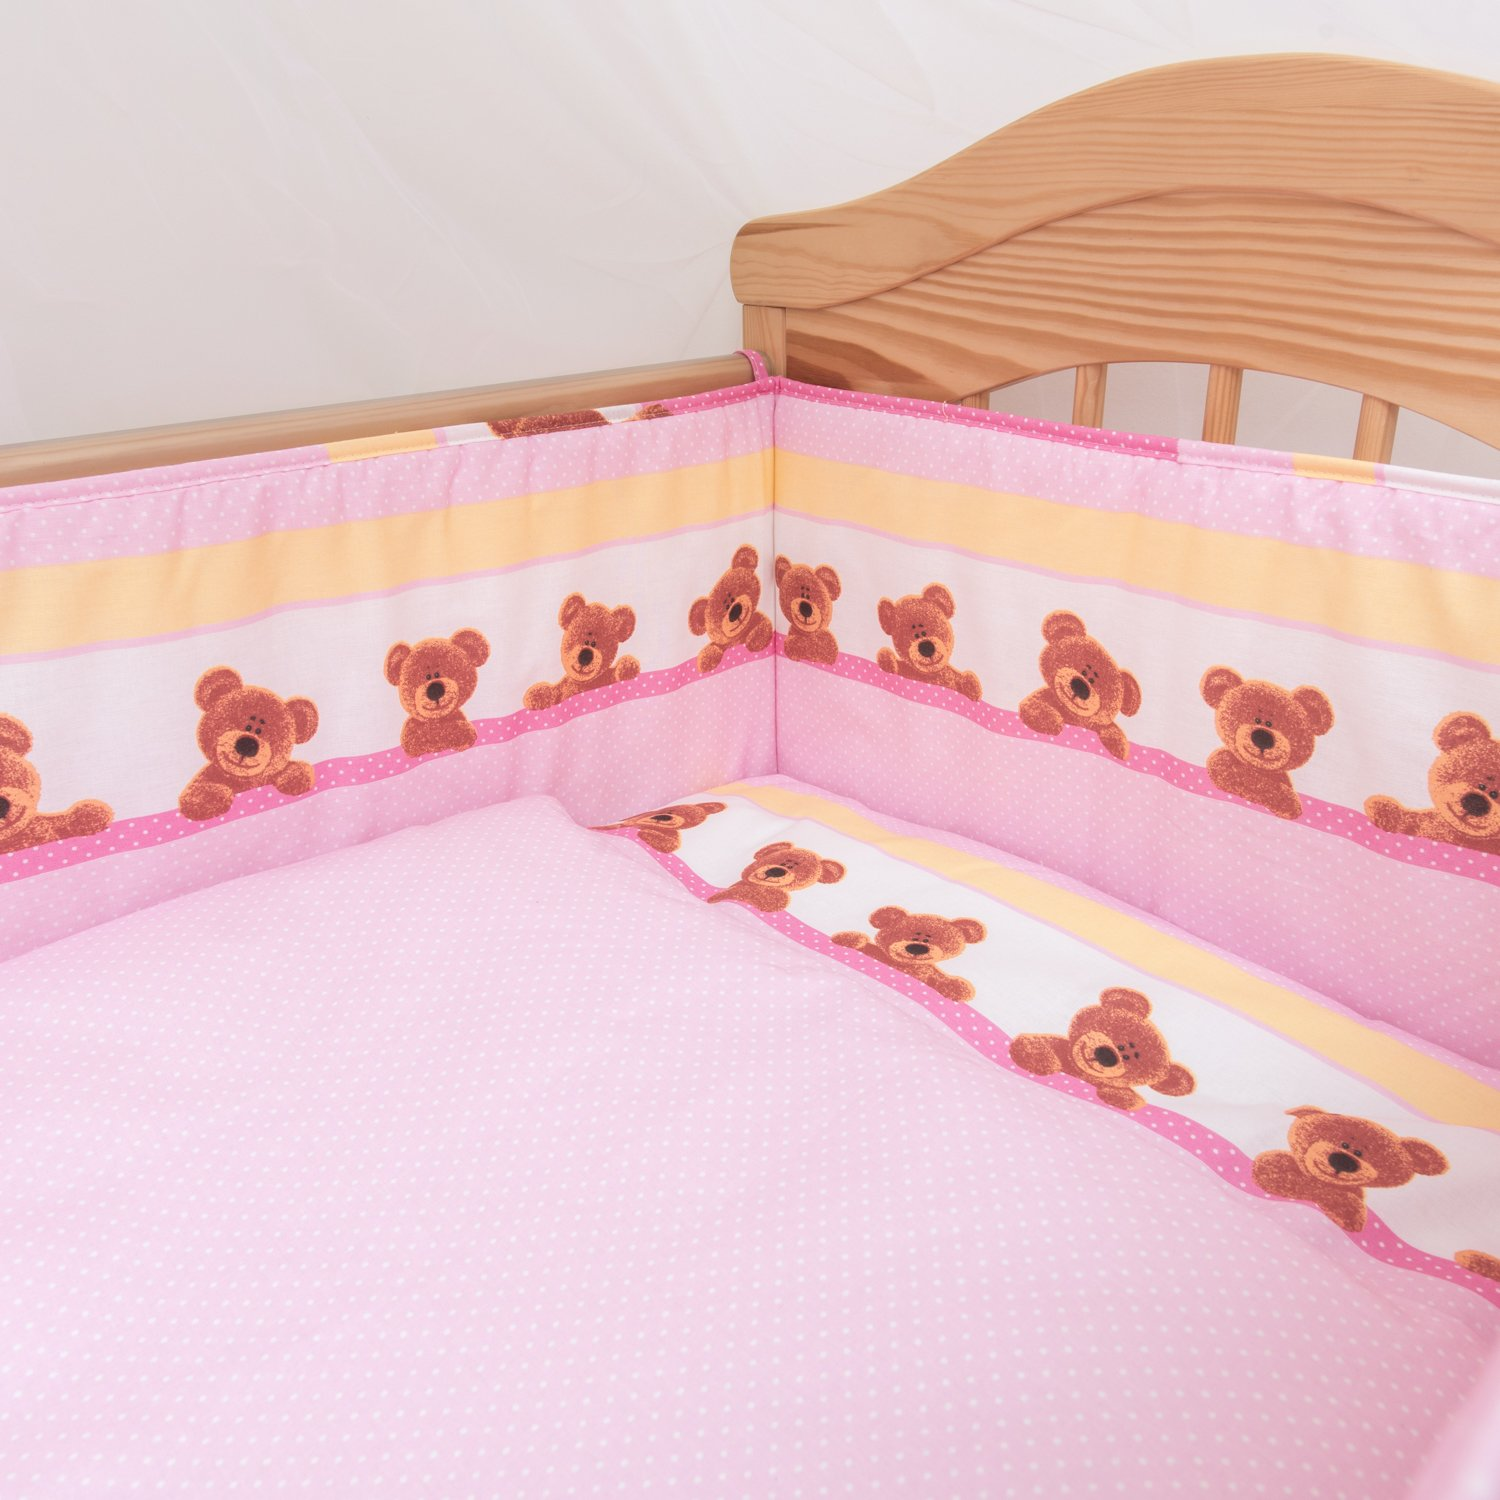 6 Piece Baby Children Bedding Set to Fit 120x60 or 140x70 cm Toddler Cot Bed to fit 140 x 70 cm Cot Bed, 2